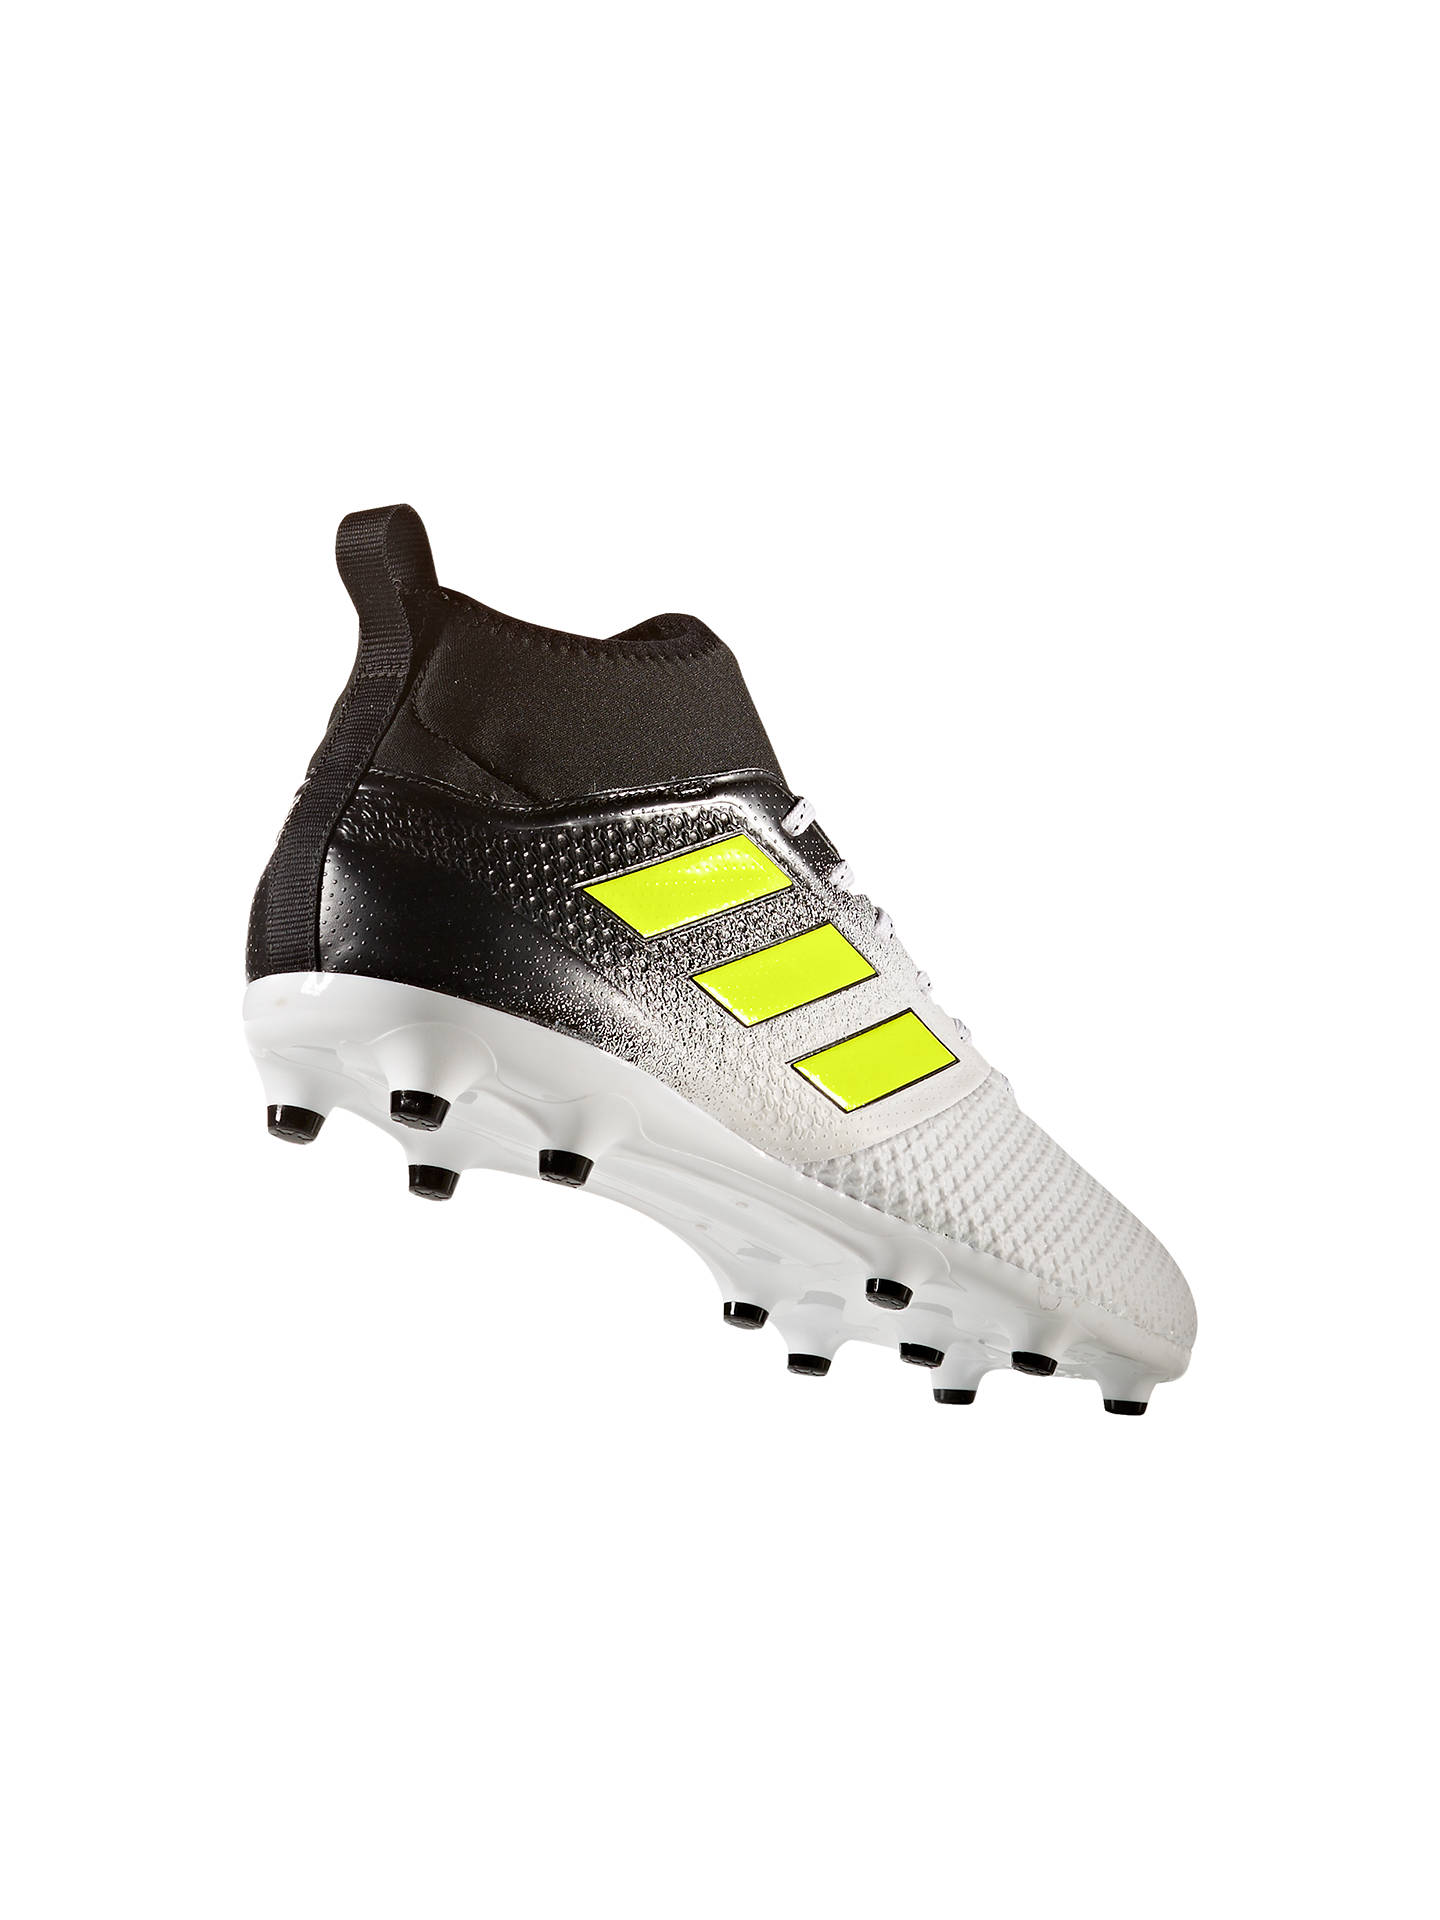 los angeles 5eacc 194fd adidas Ace 17.3 Primemesh AG Men's Firm Ground Football ...